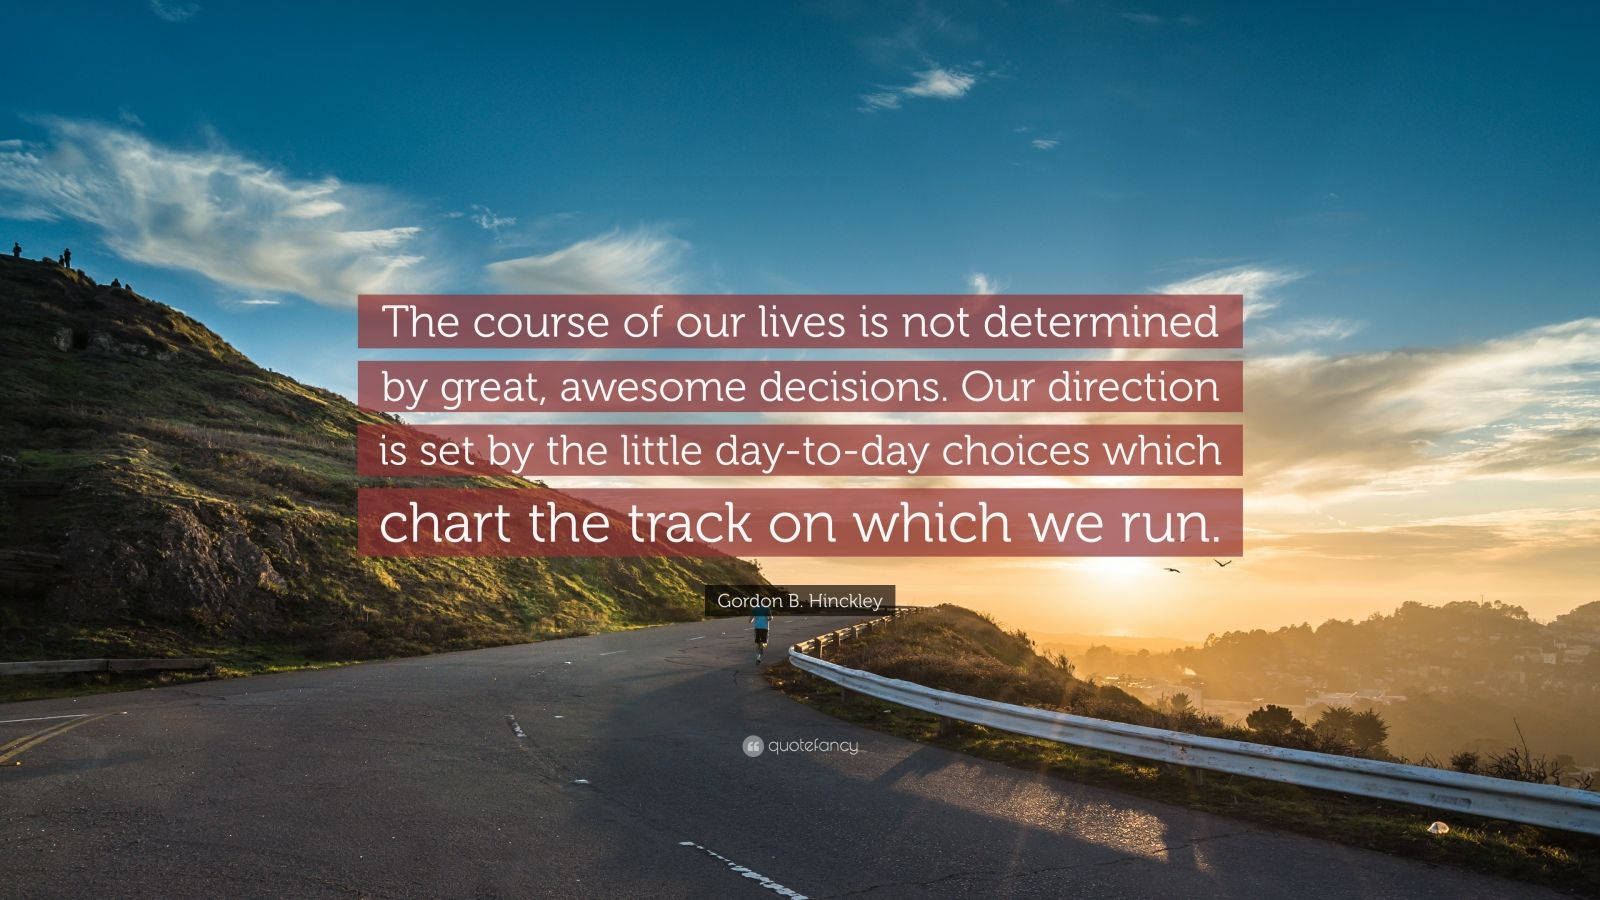 "Gordon B. Hinckley Quote: ""The course of our lives is not determined by great, awesome decisions. Our direction is set by the little day-to-day choices which chart the track on which we run."""